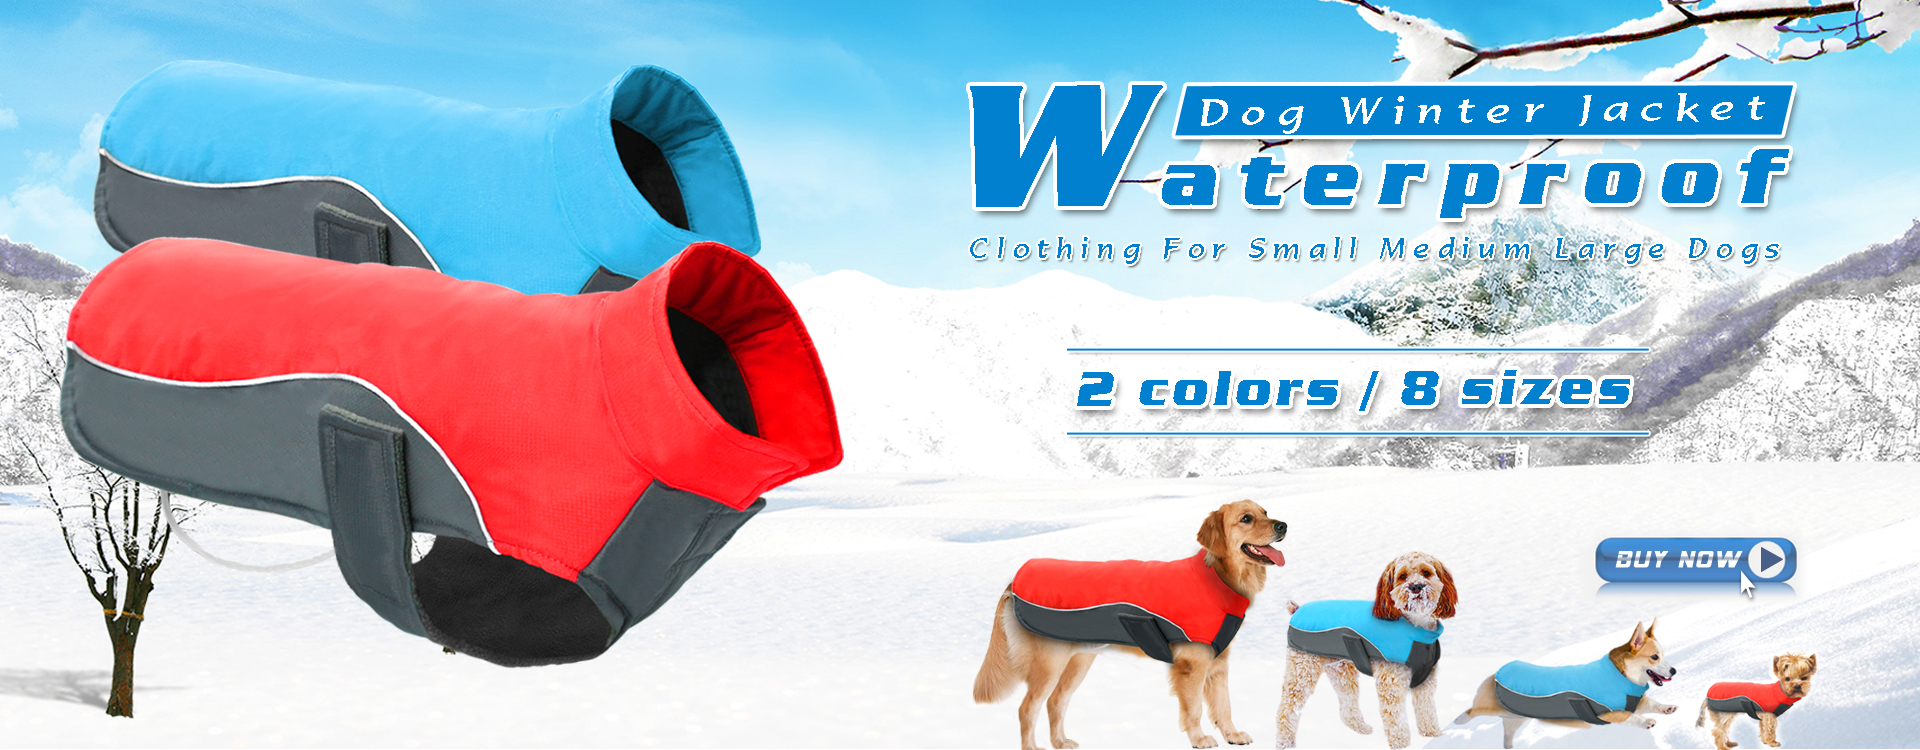 What pet products can you buy online? 81